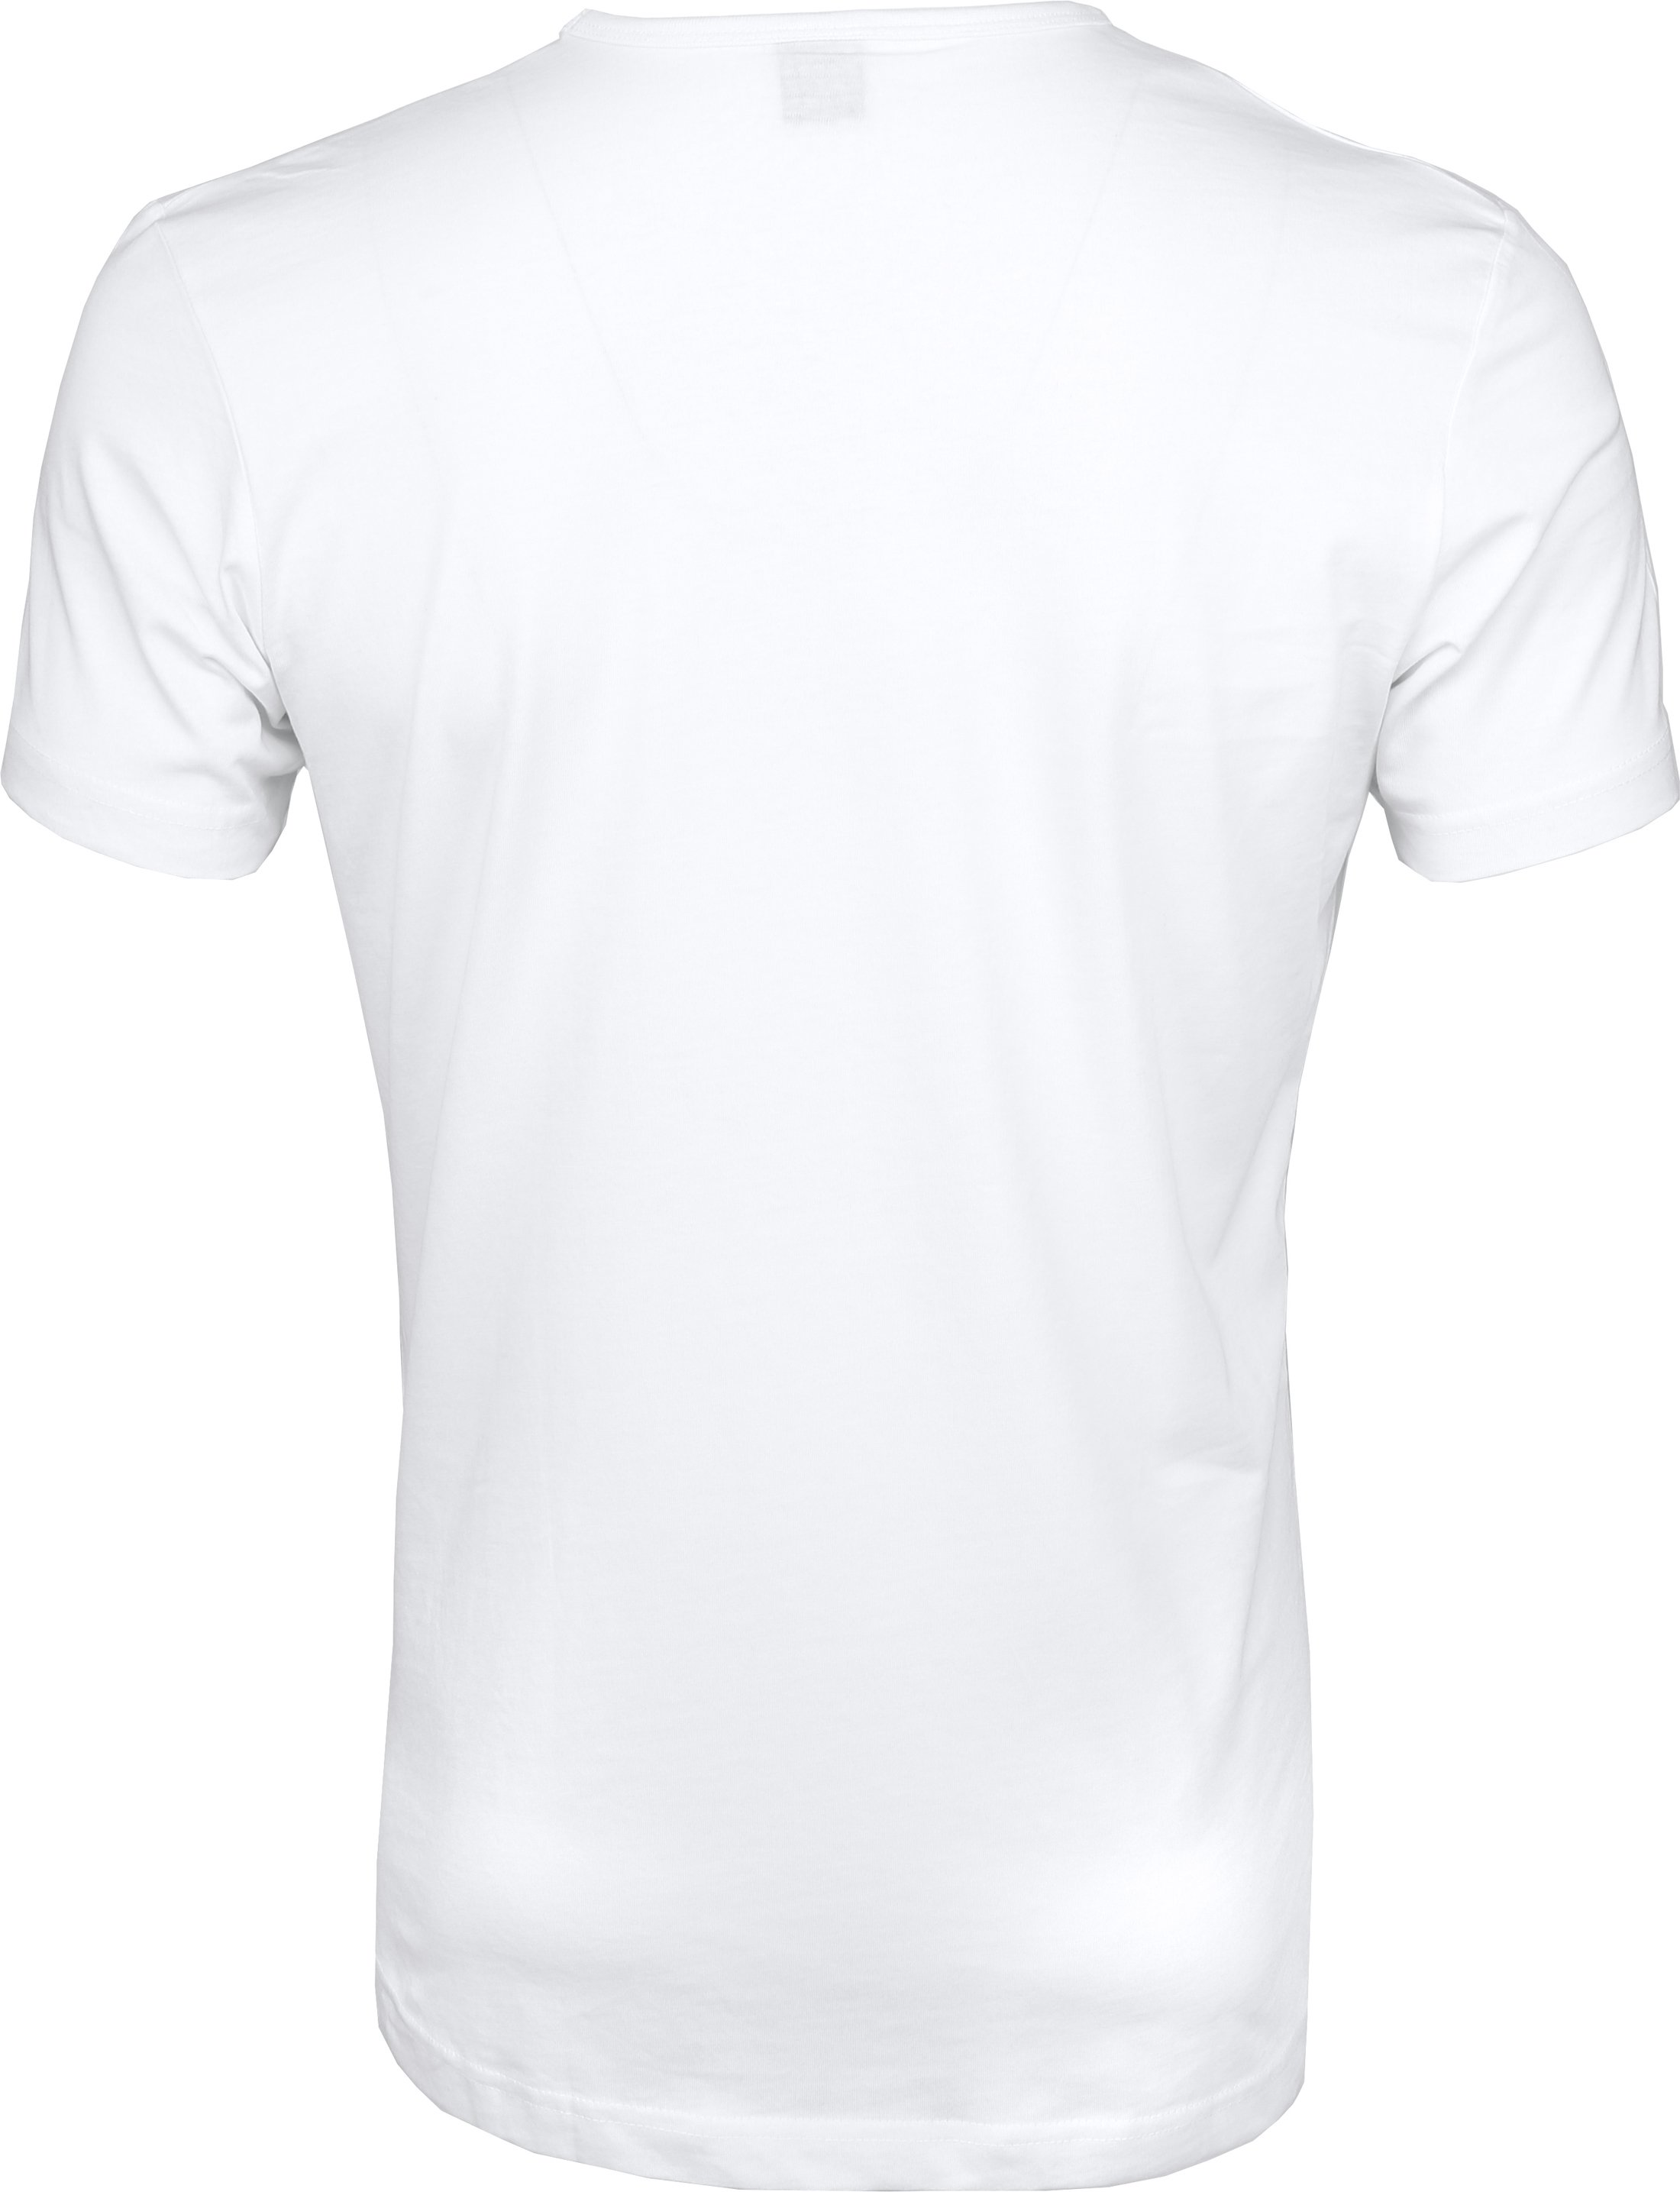 Suitable T-shirt 2-Pack O-Neck White photo 4